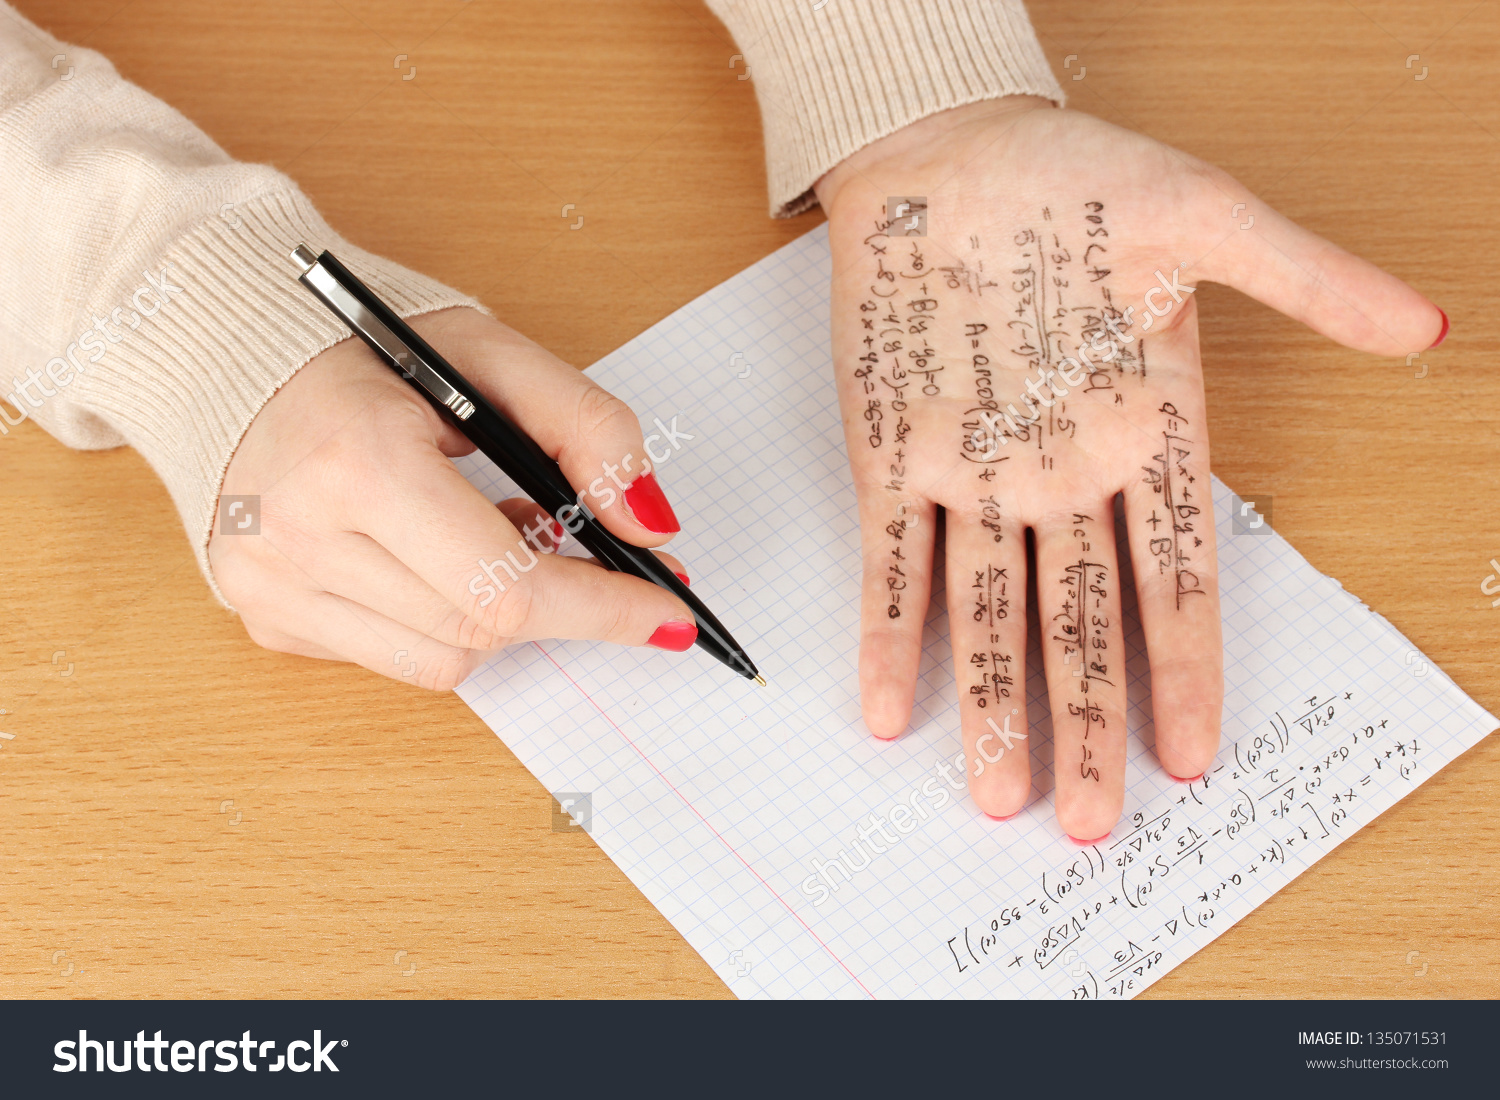 Write Cheat Sheet On Hand On Stock Photo 135071531 - Shutterstock png freeuse download